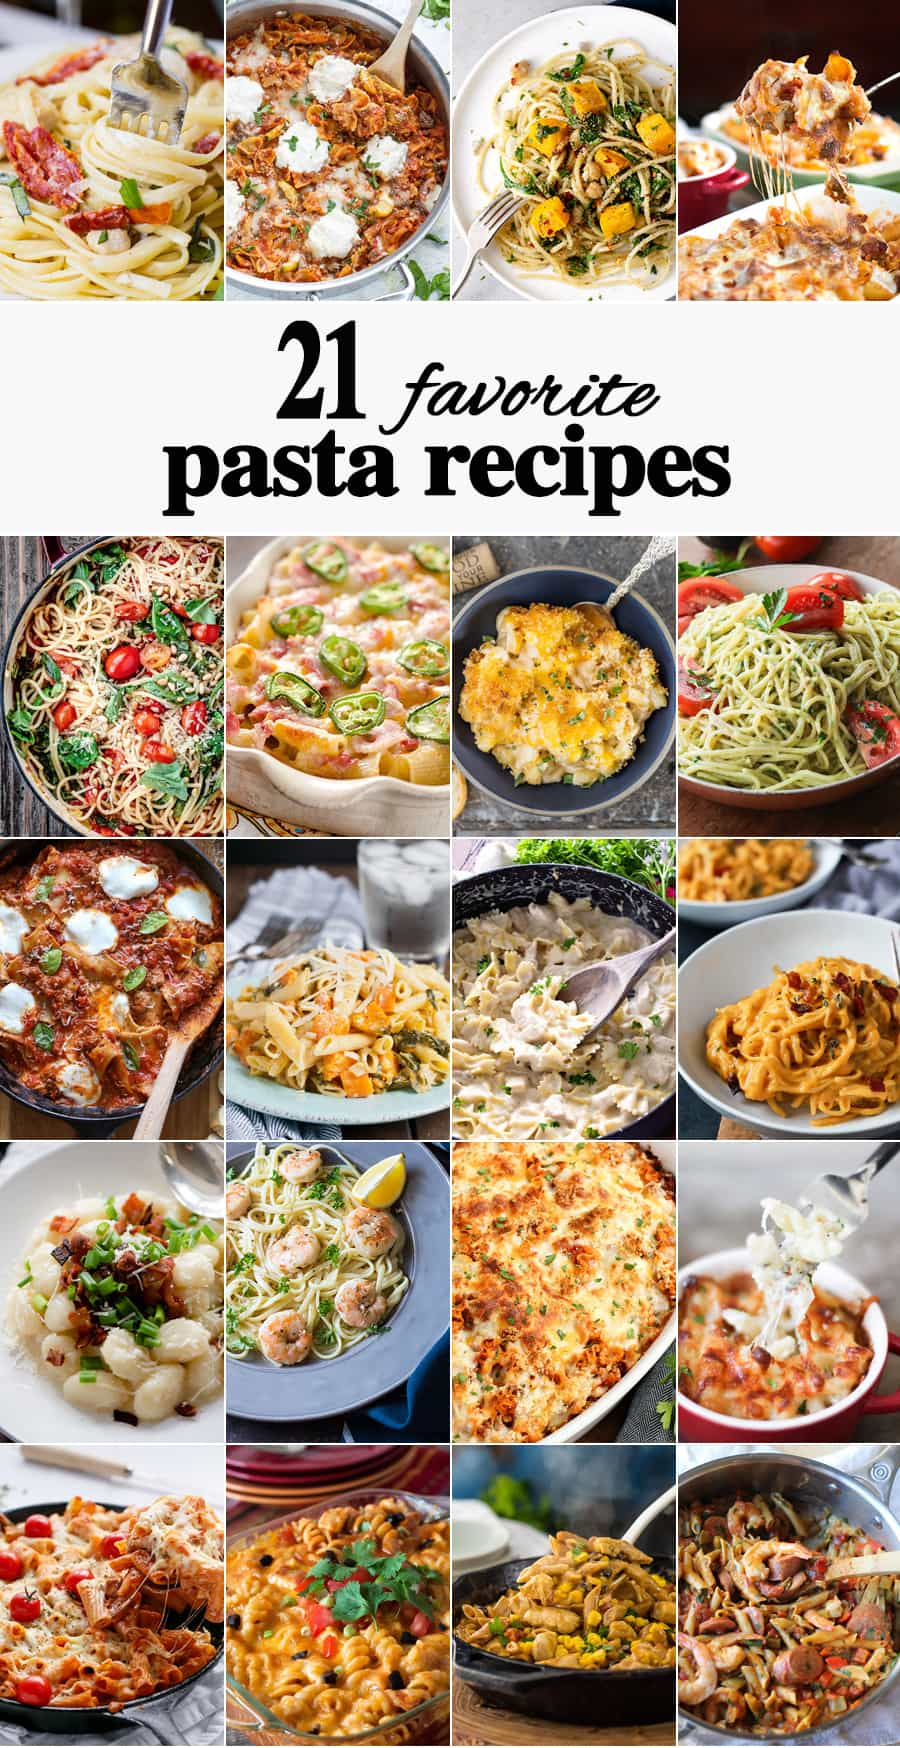 21 Favorite Pasta Recipes